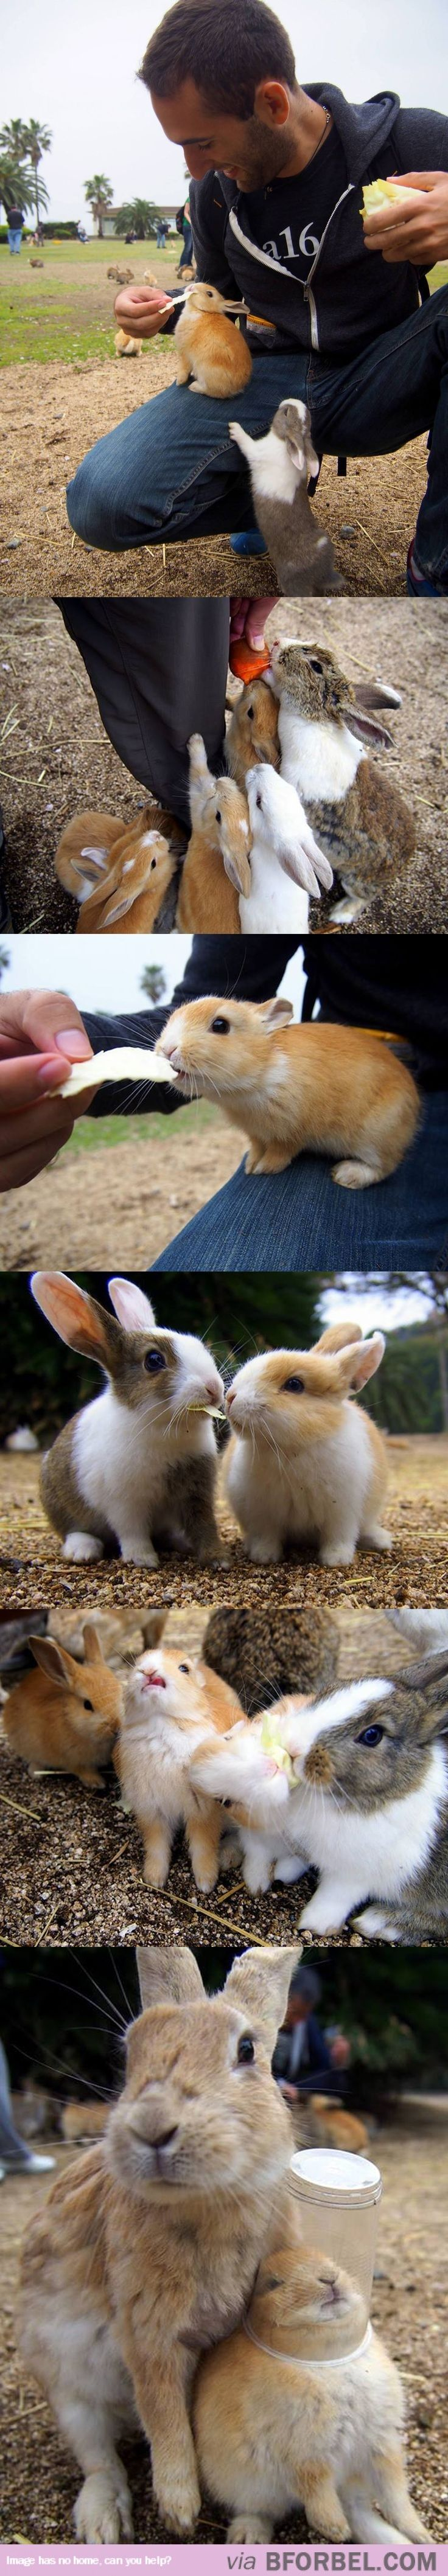 6 Of The Cutest Bunny Images You'll See Today…